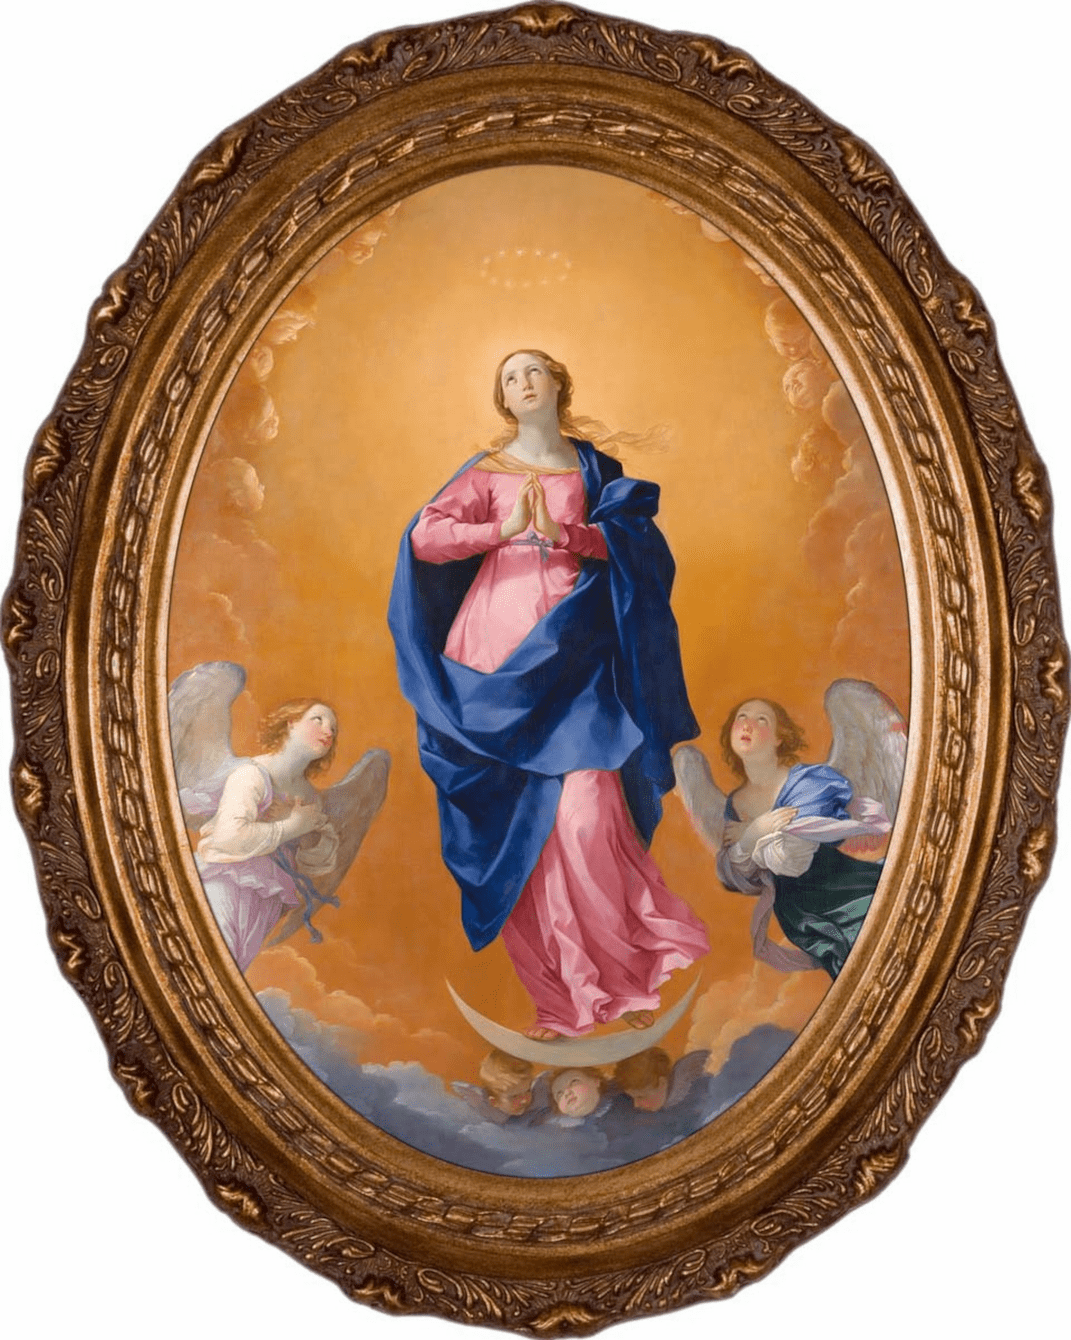 Nelson's Gifts The Immaculate Conception by Guido Reni Canvas in Oval Frame Wall Picture